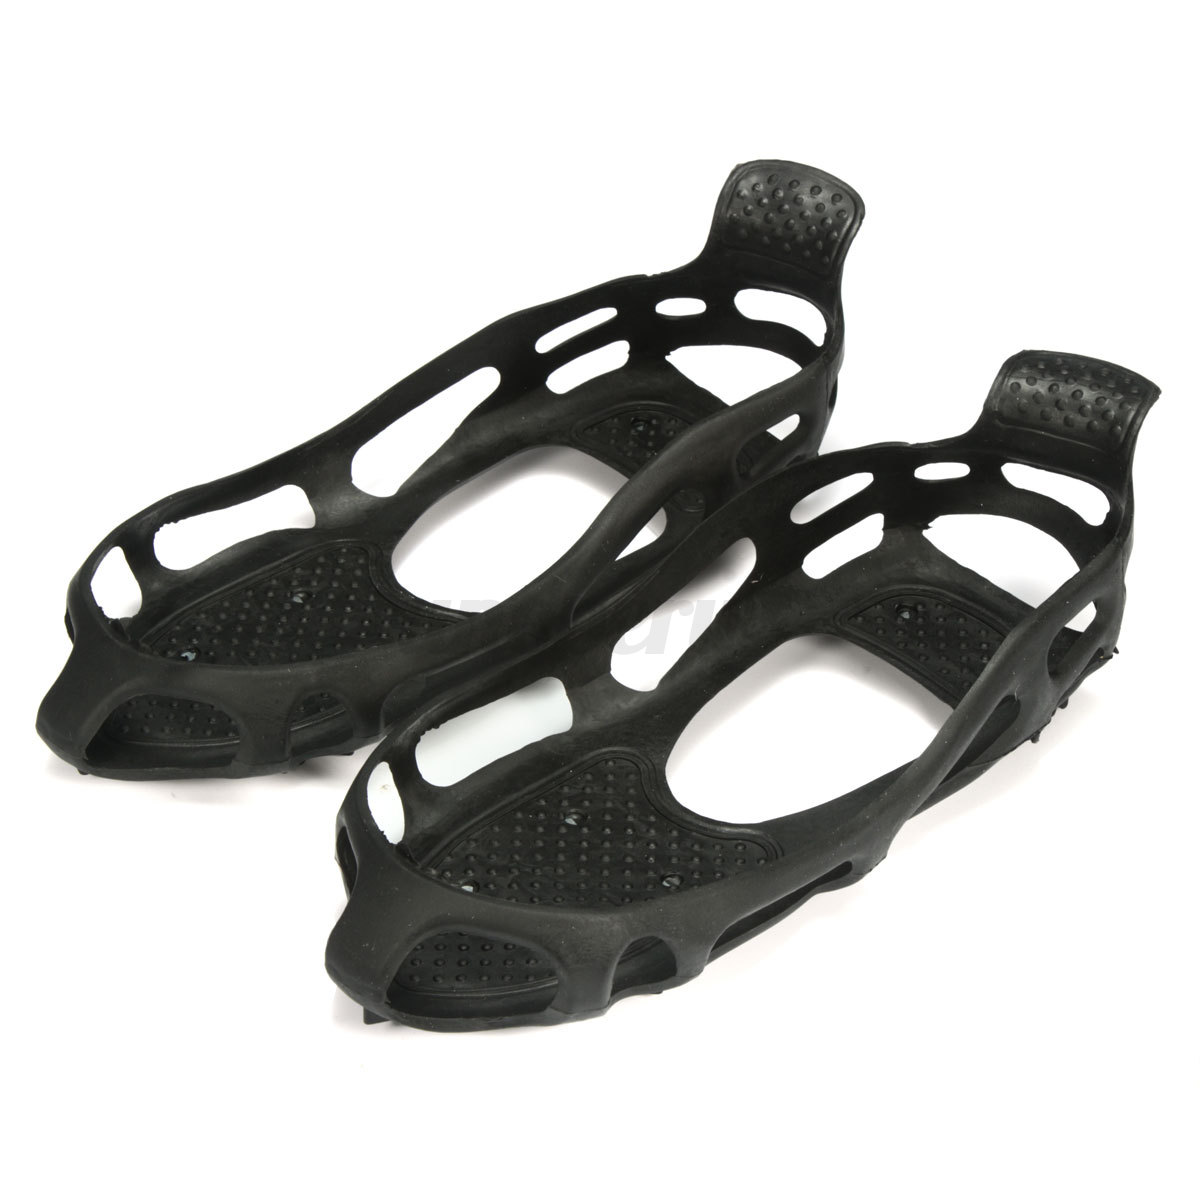 ICE SNOW ANTI SLIP SPIKES GRIPS GRIPPERS CRAMPON CLEATS FOR SHOES BOOT OVERSHOE~